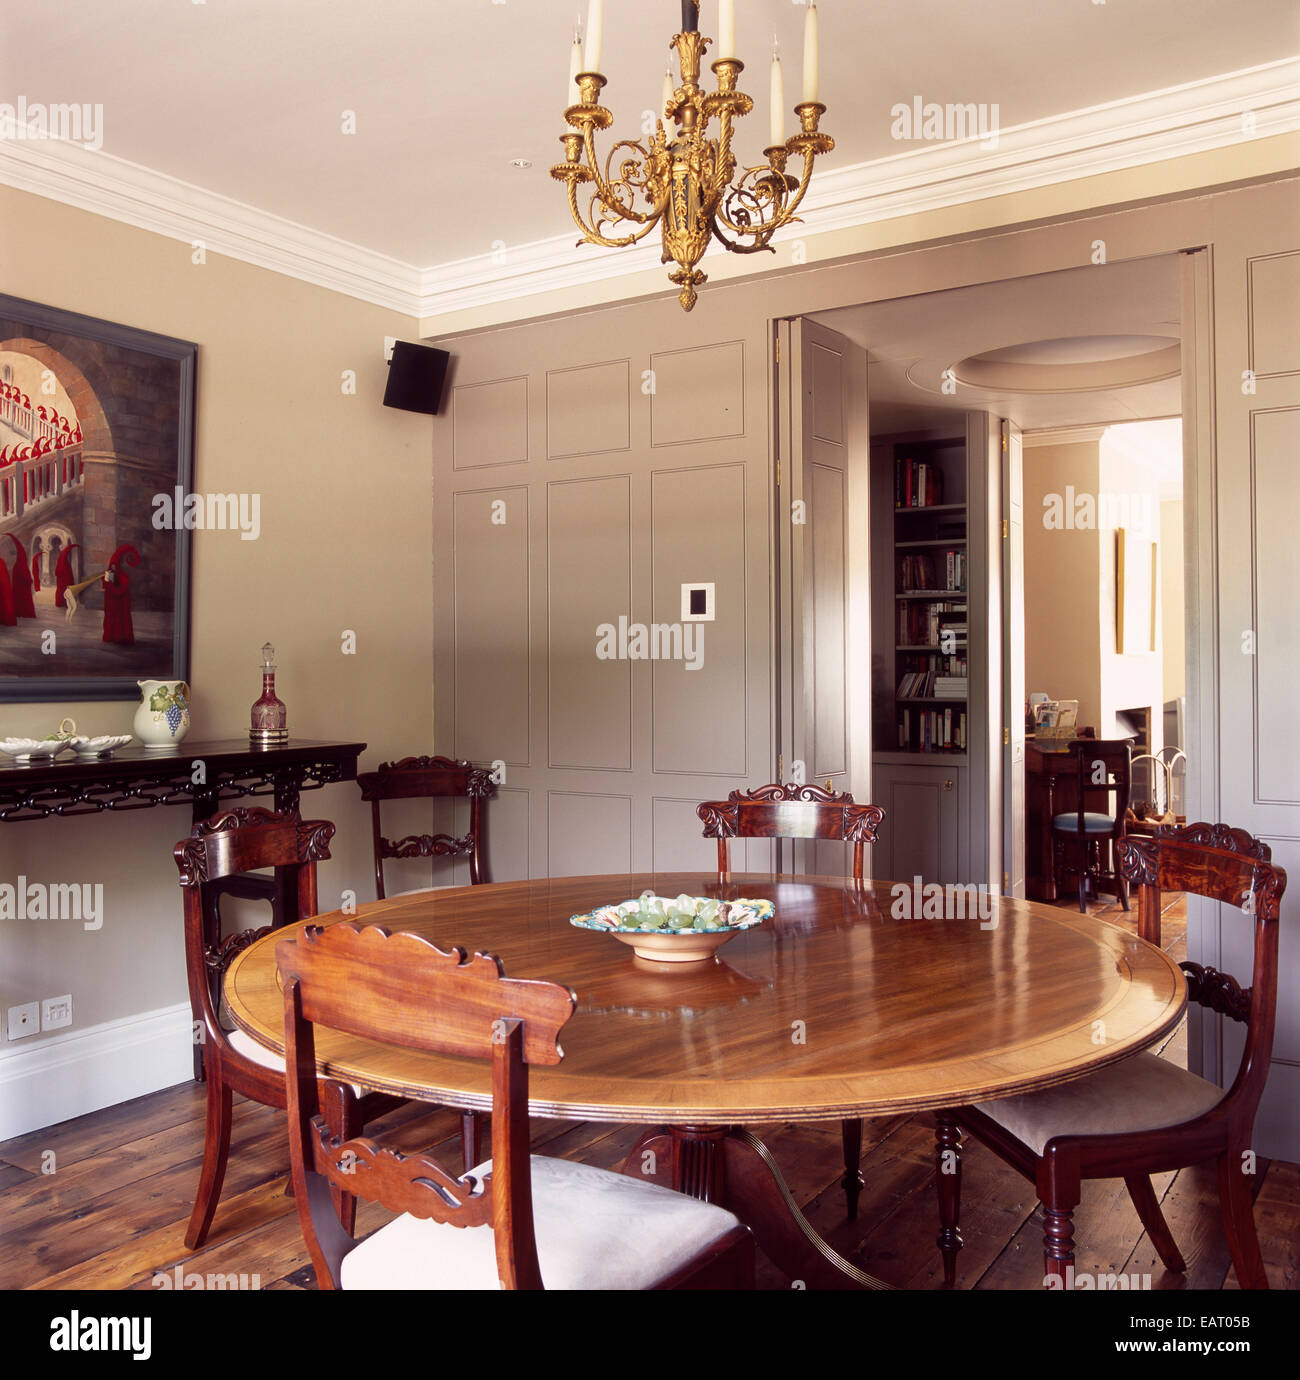 Dining Room With Round Wooden Table And Chairs Stock Photo Alamy